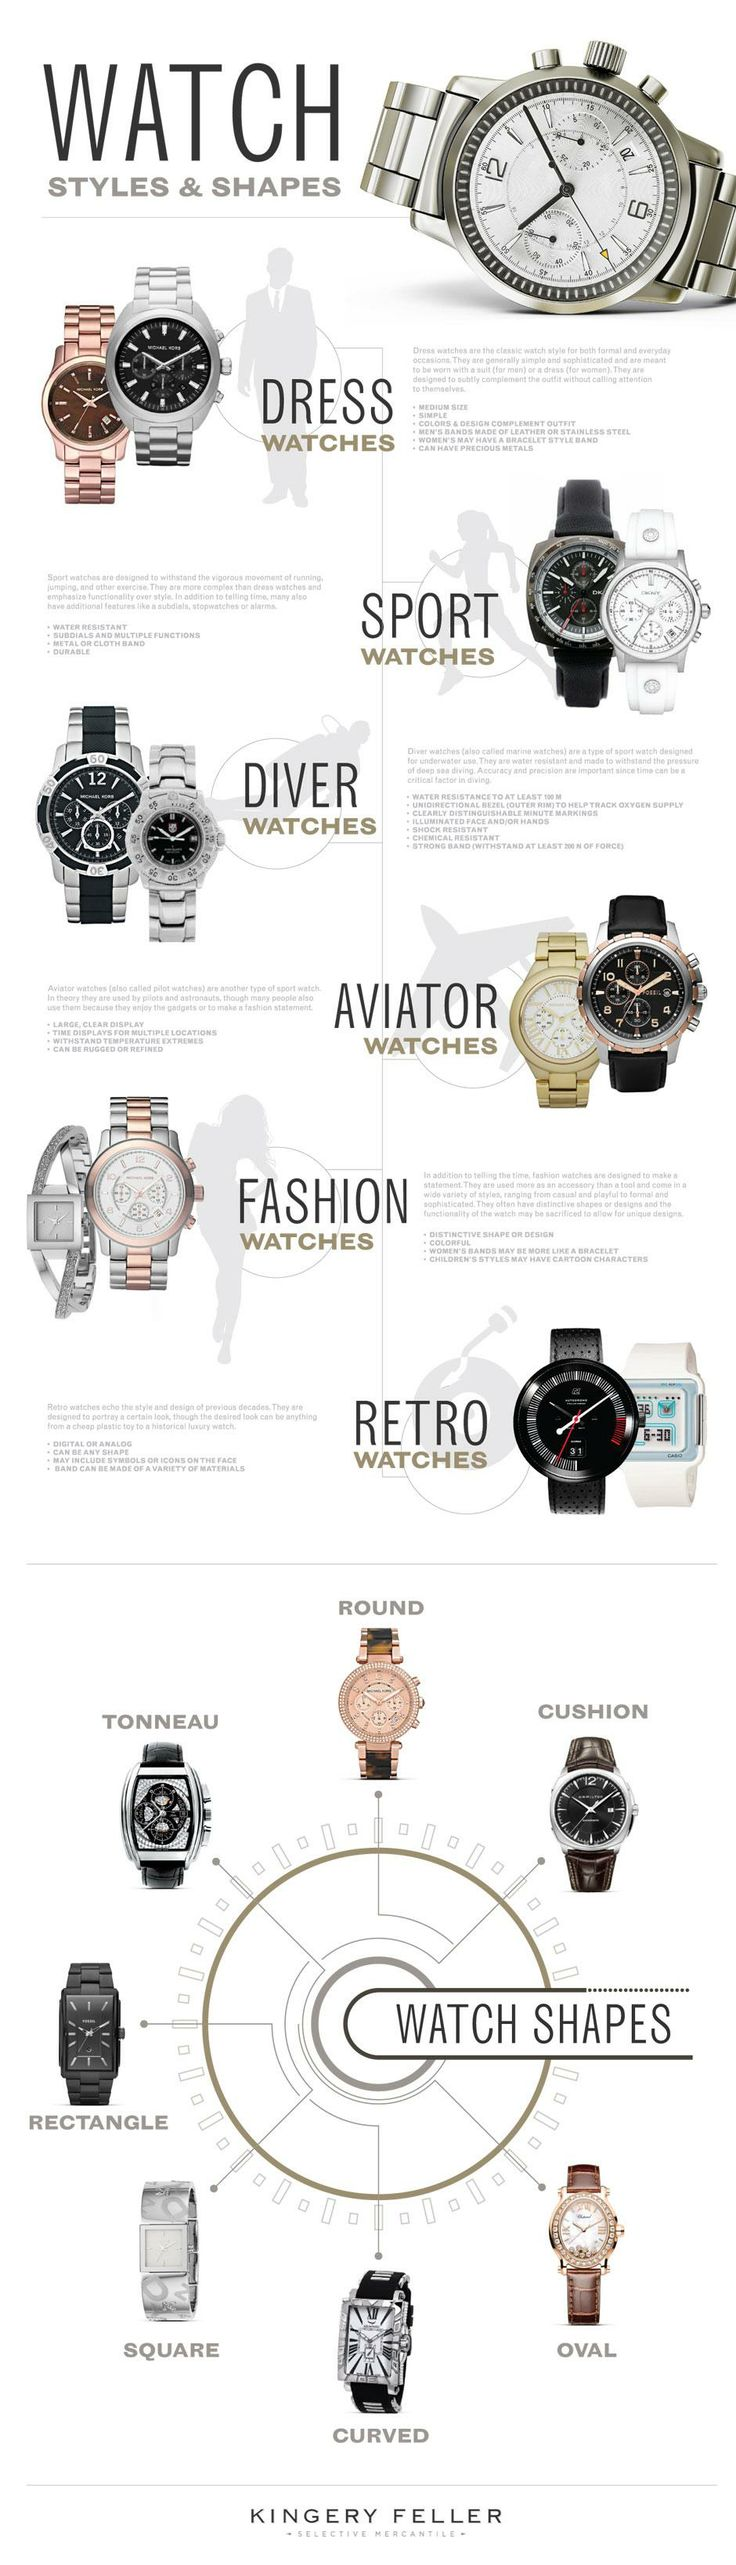 6 Types Of Watches Styles & Shapes To Wear For Men & Women #watches #